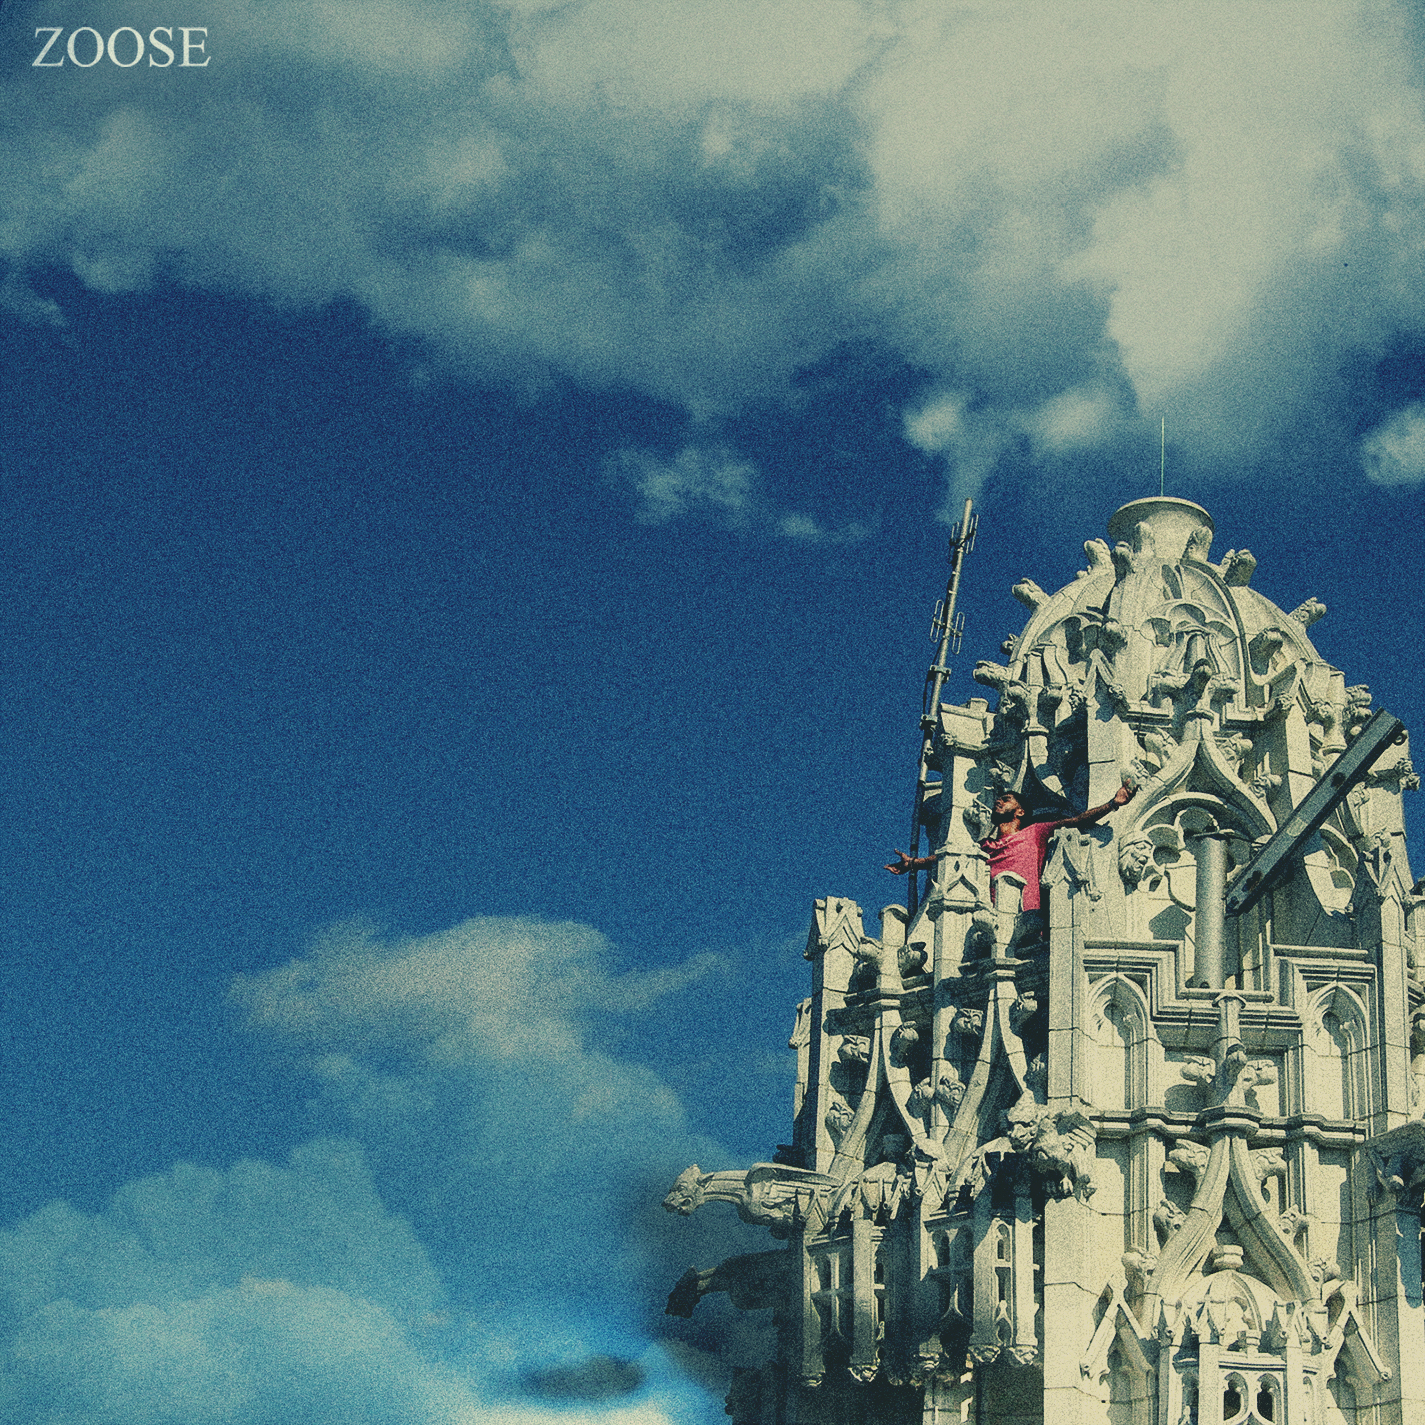 ZOOSE [2017]